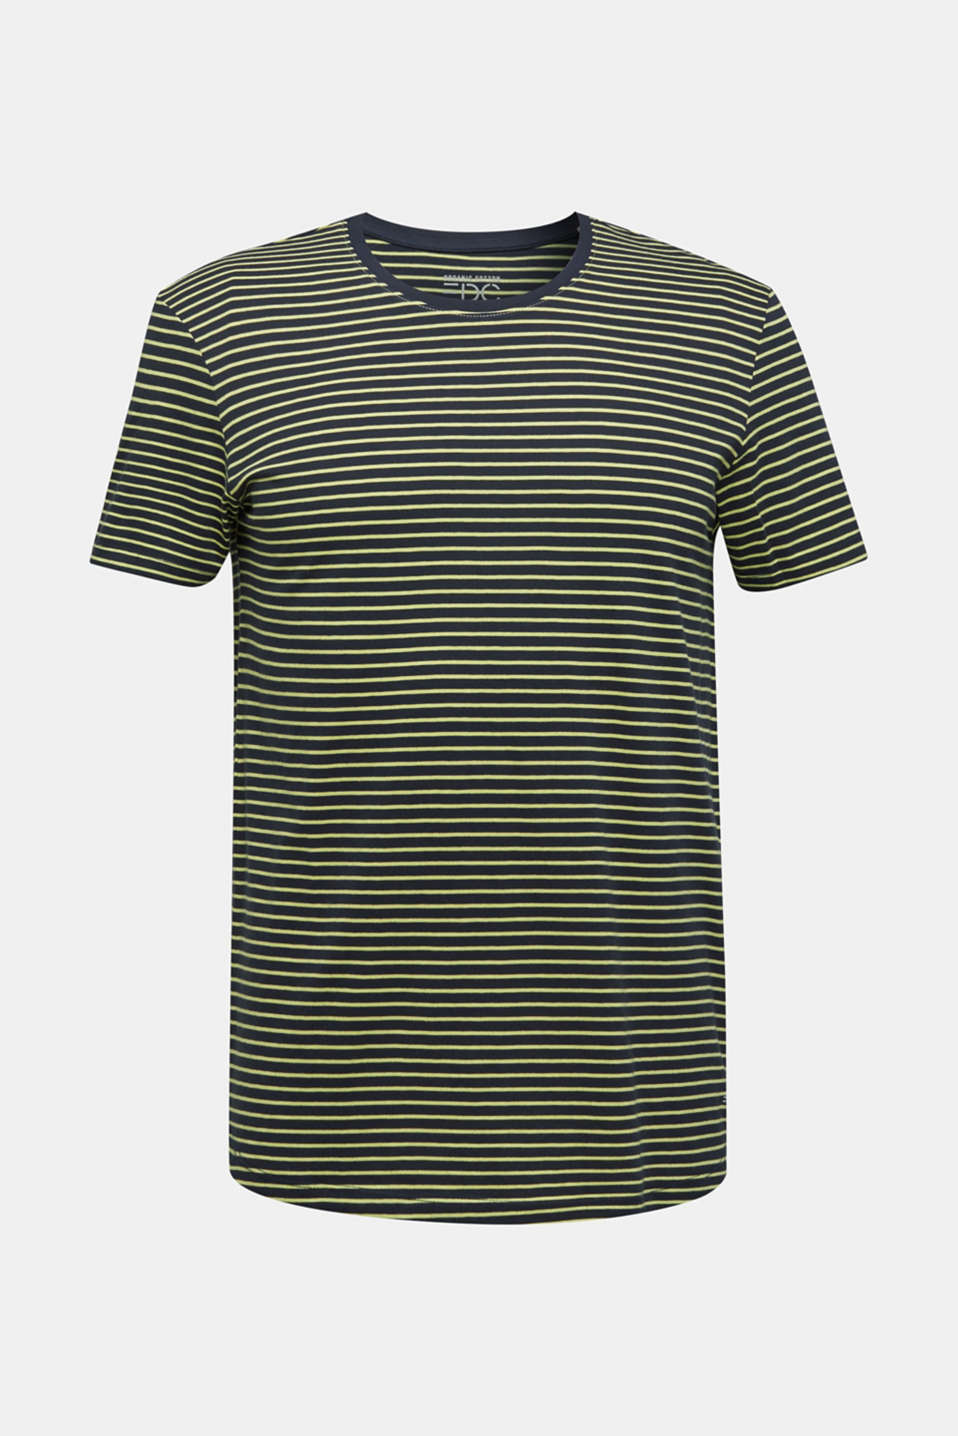 Jersey T-shirt with stripes, 100% cotton, BRIGHT YELLOW 3, detail image number 6